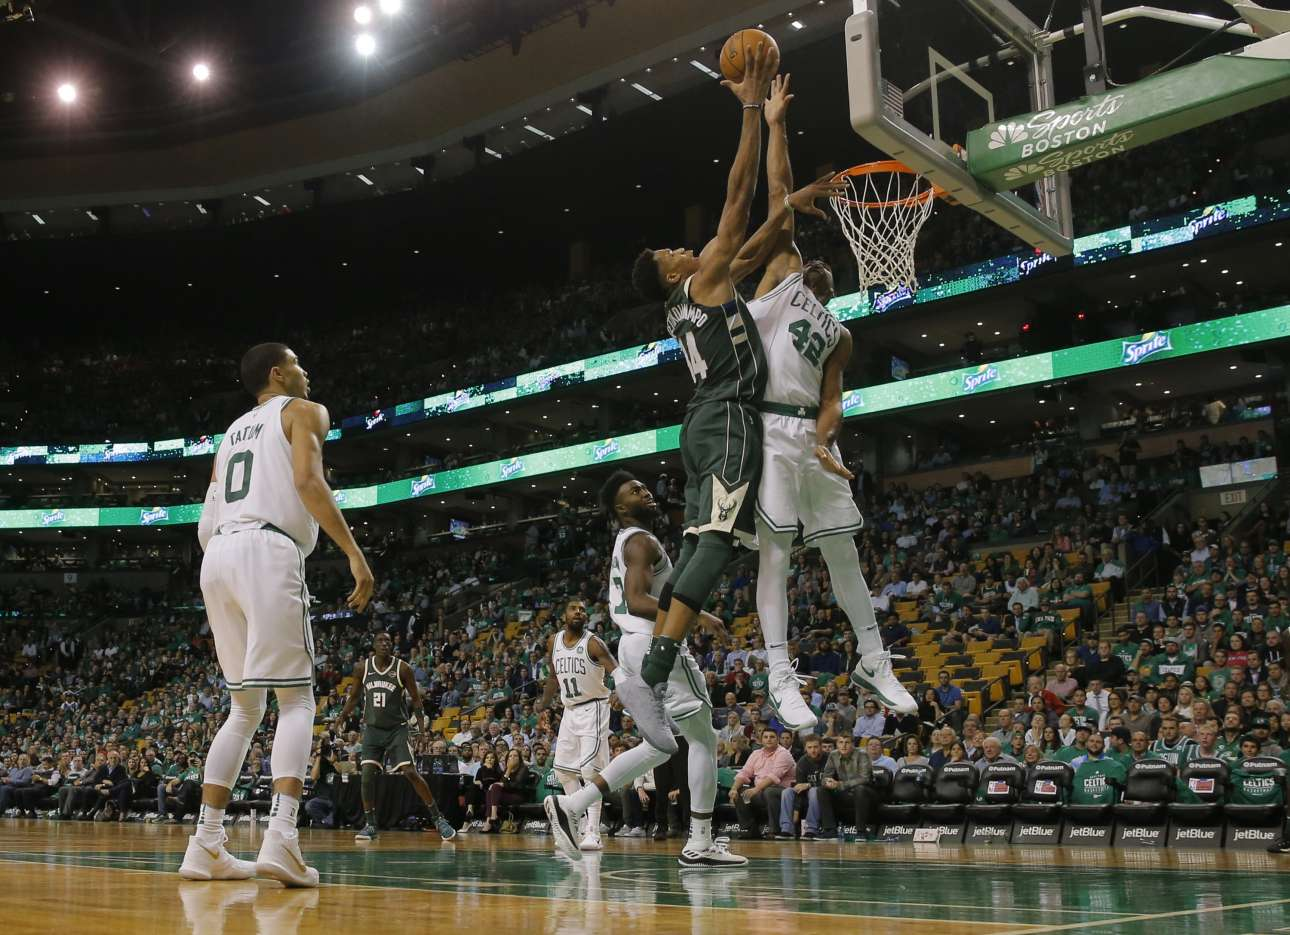 2017-10-19T020303Z_1216444785_NOCID_RTRMADP_3_NBA-MILWAUKEE-BUCKS-AT-BOSTON-CELTICS